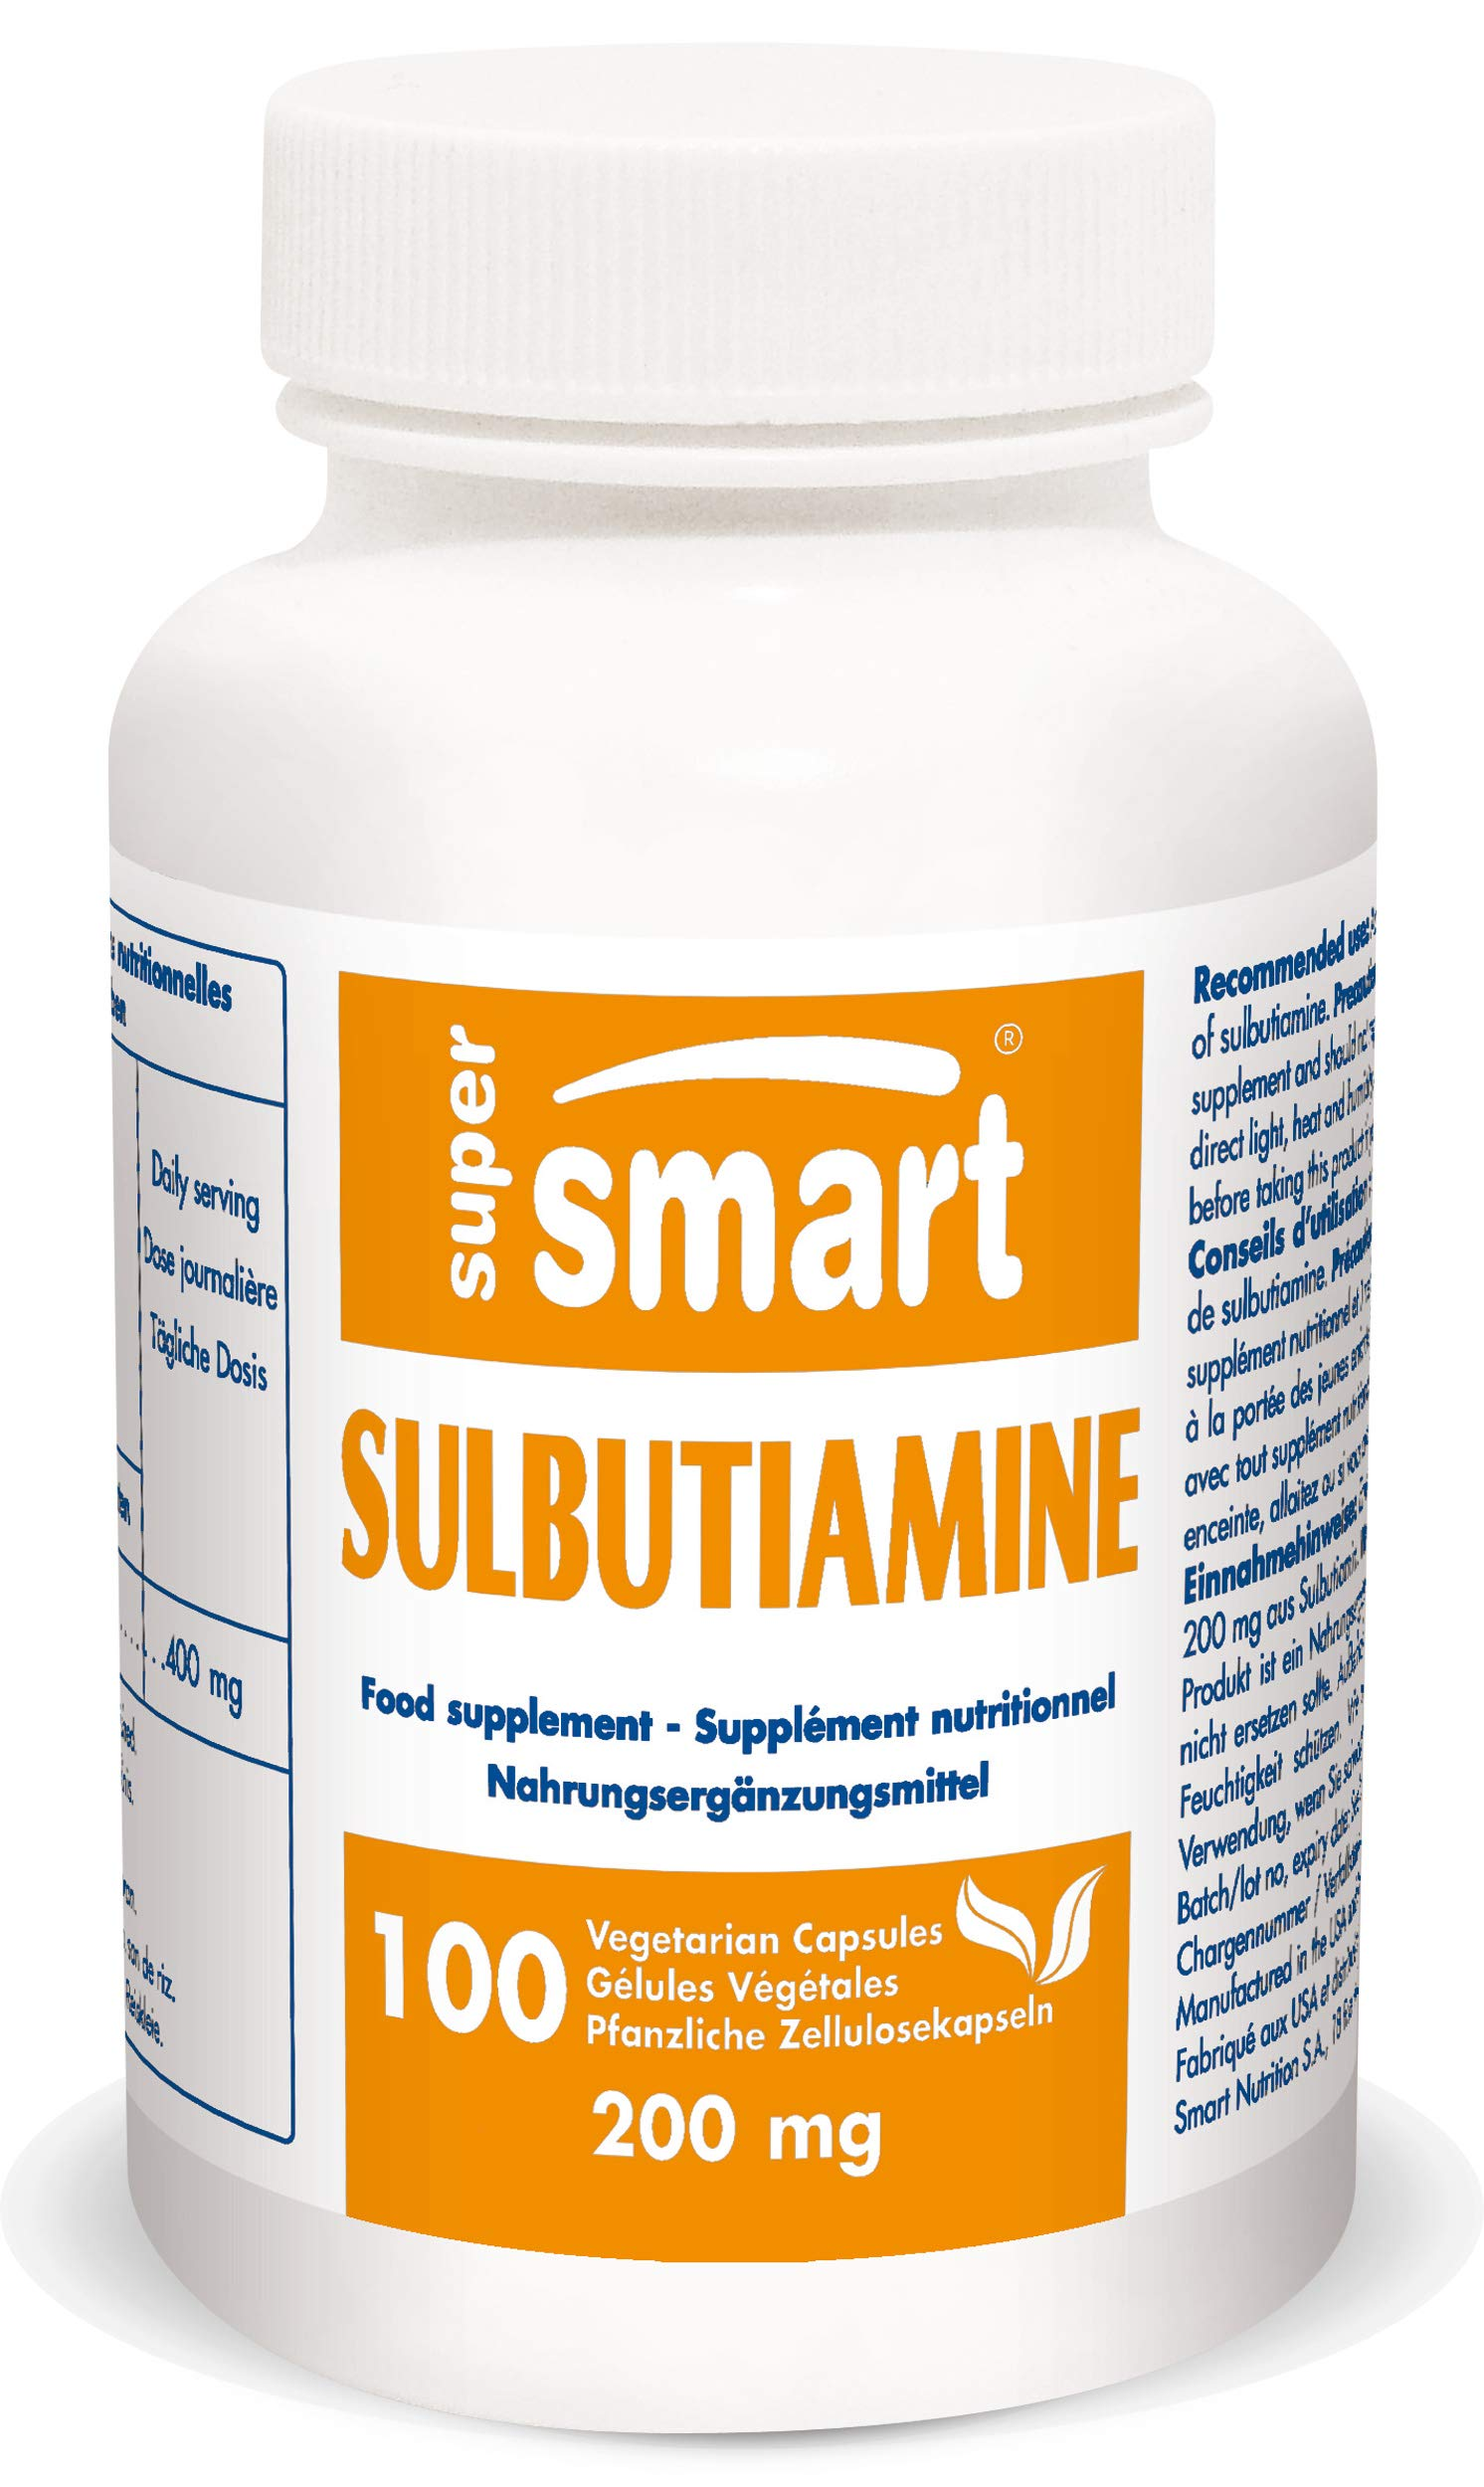 Supersmart - Sulbutiamine 200 mg - Nootropic Supplement - Boost Physical Energy, Memory, Focus, Learning and Concentration | Non-GMO - 100 Vegetarian Capsules by SUPERSMART